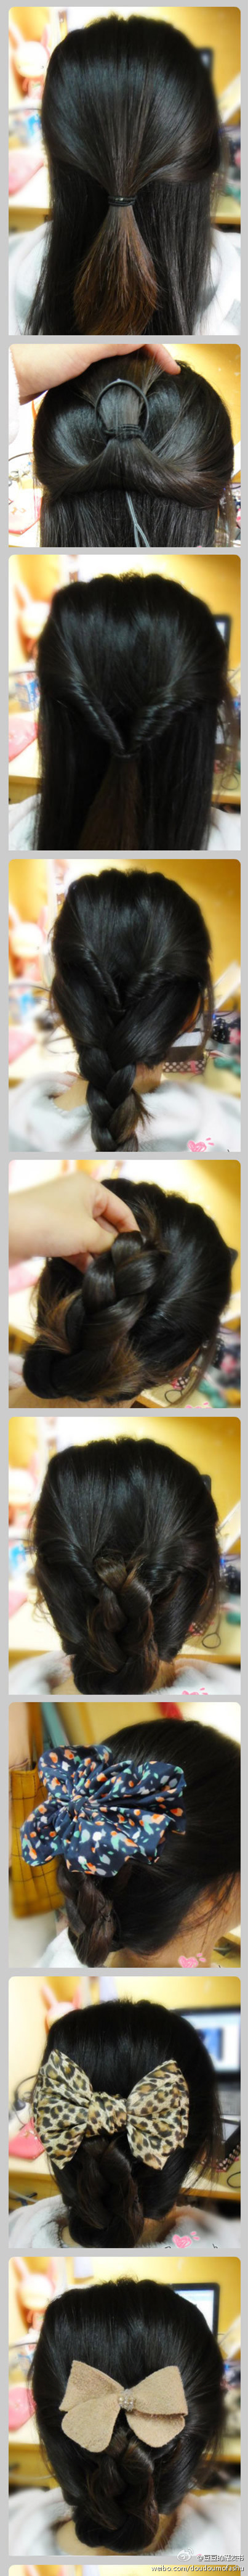 Easy braid and ponytail hairstyle